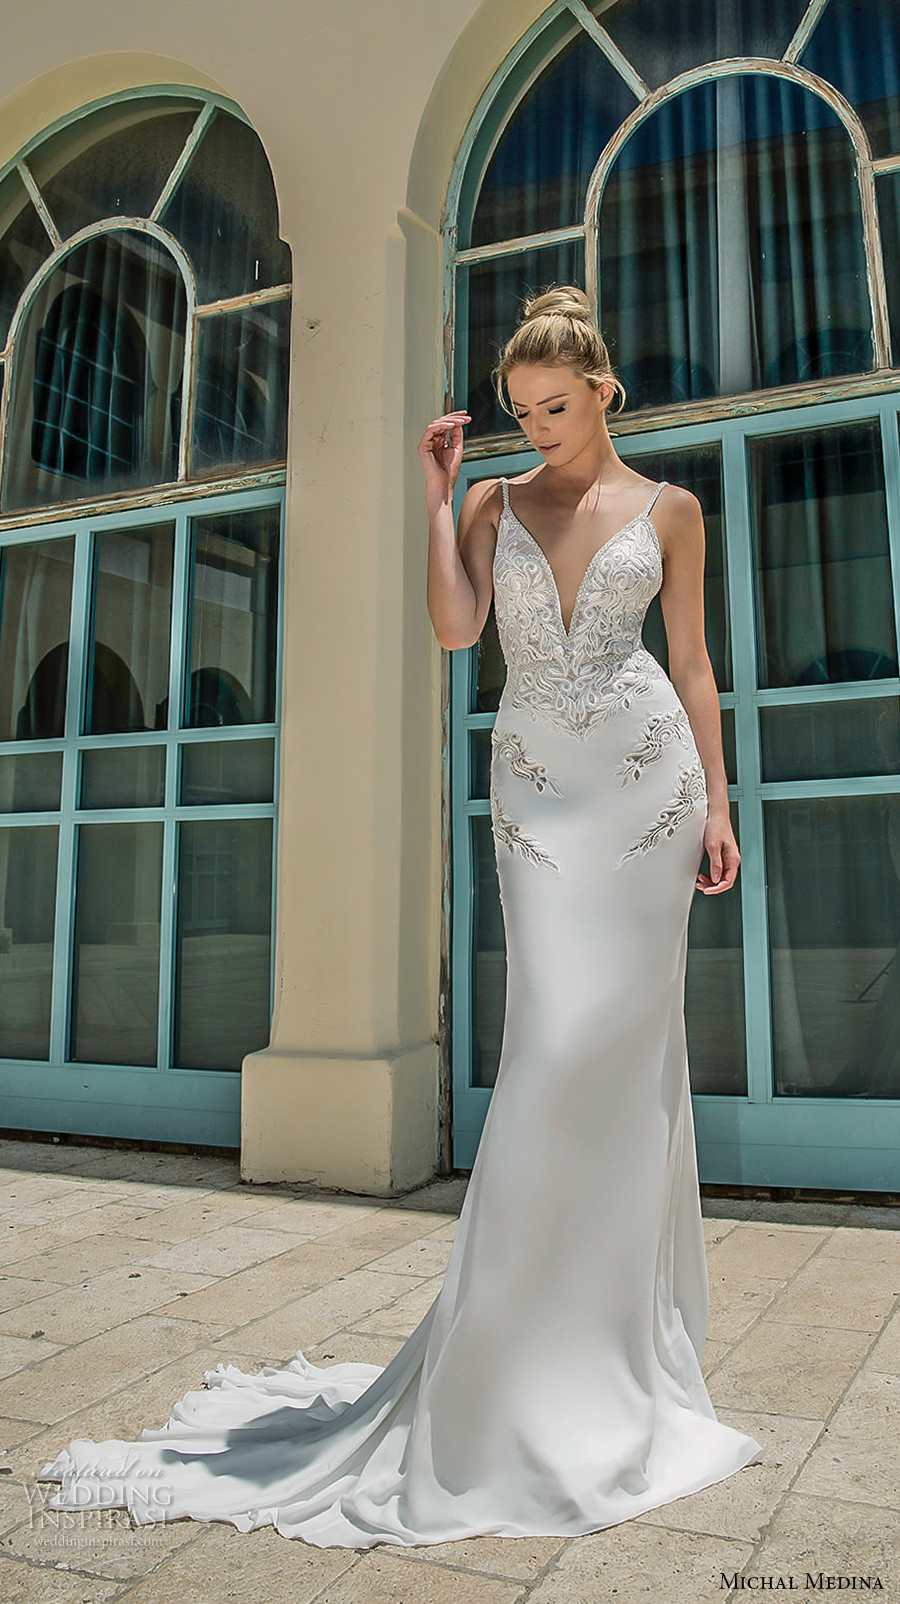 michal medina 2017 bridal spagetti strap deep plunging sweetheart neckline heavily embellished bodice elegant sheath wedding dress open low back chapel train (dianne) mv